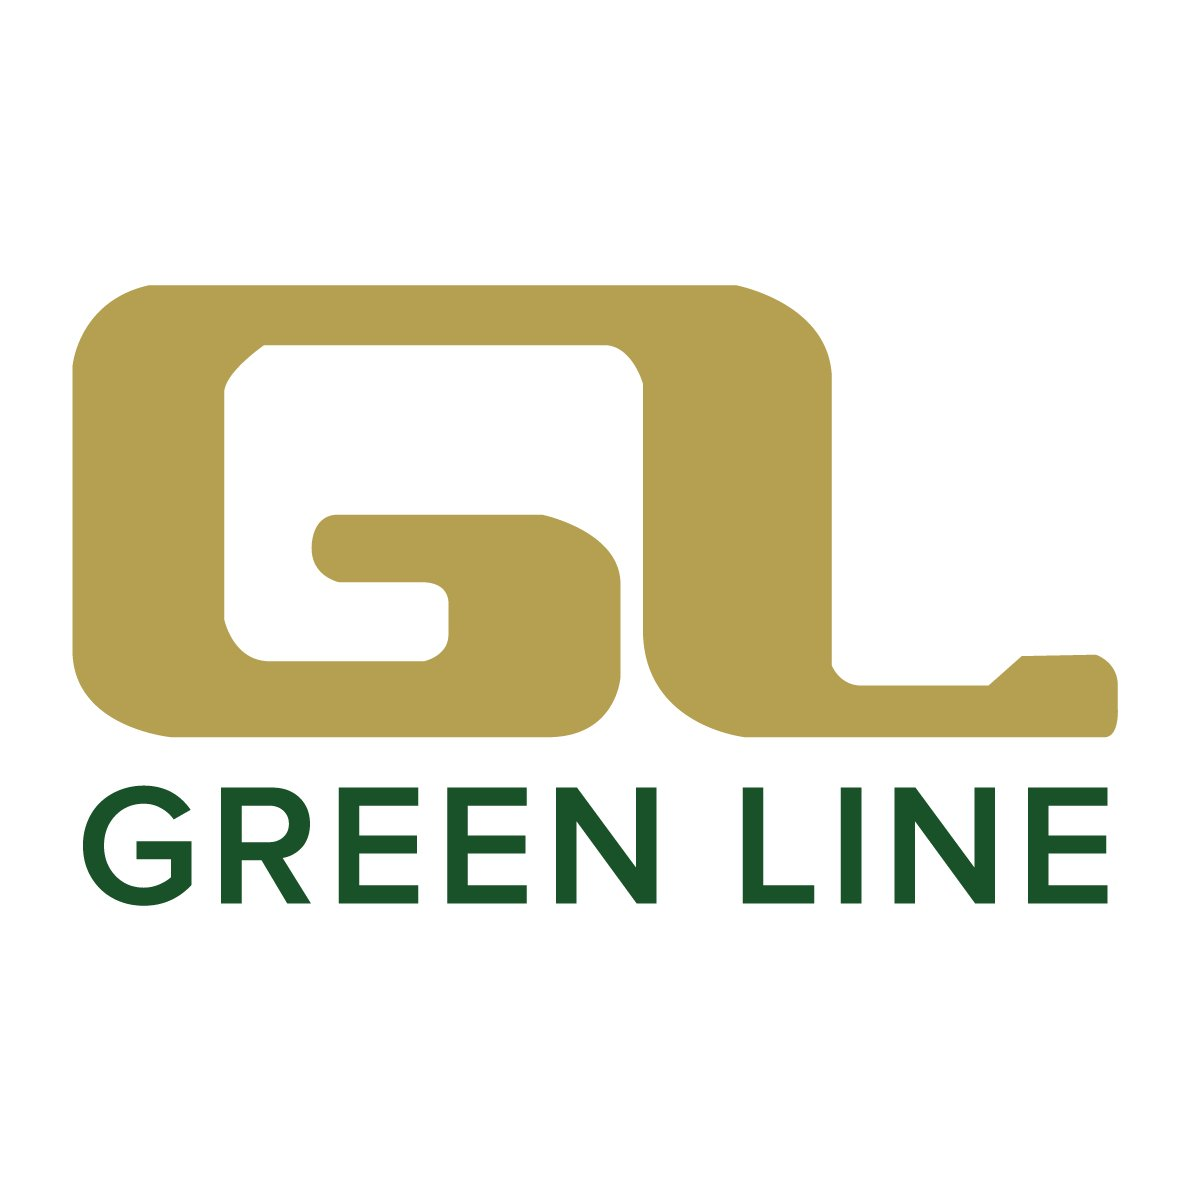 Greenline Corporation